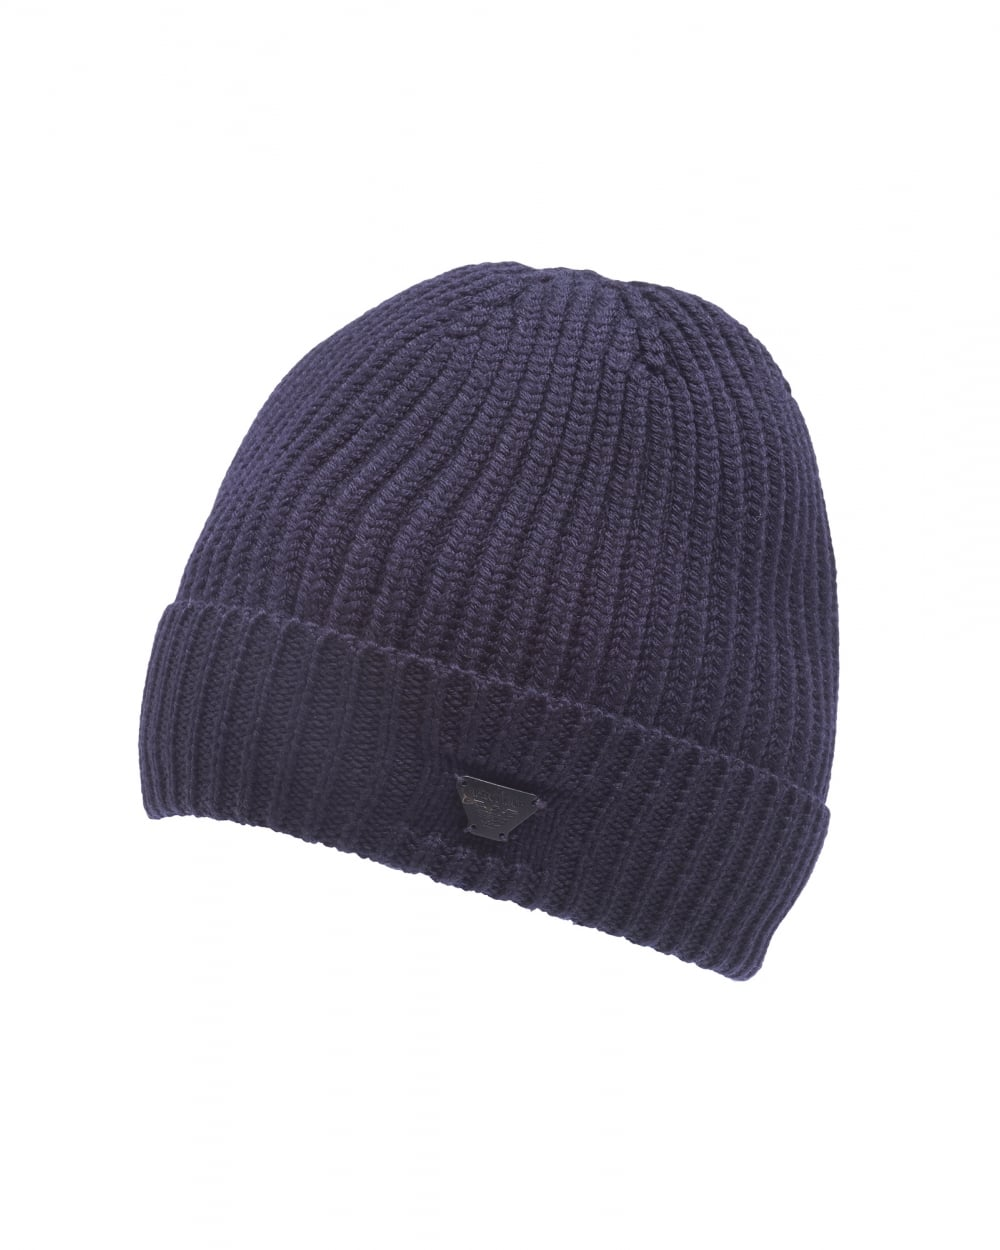 Armani Jeans Mens Navy Blue Chunky Wool Badge Beanie Hat 23a3097f812